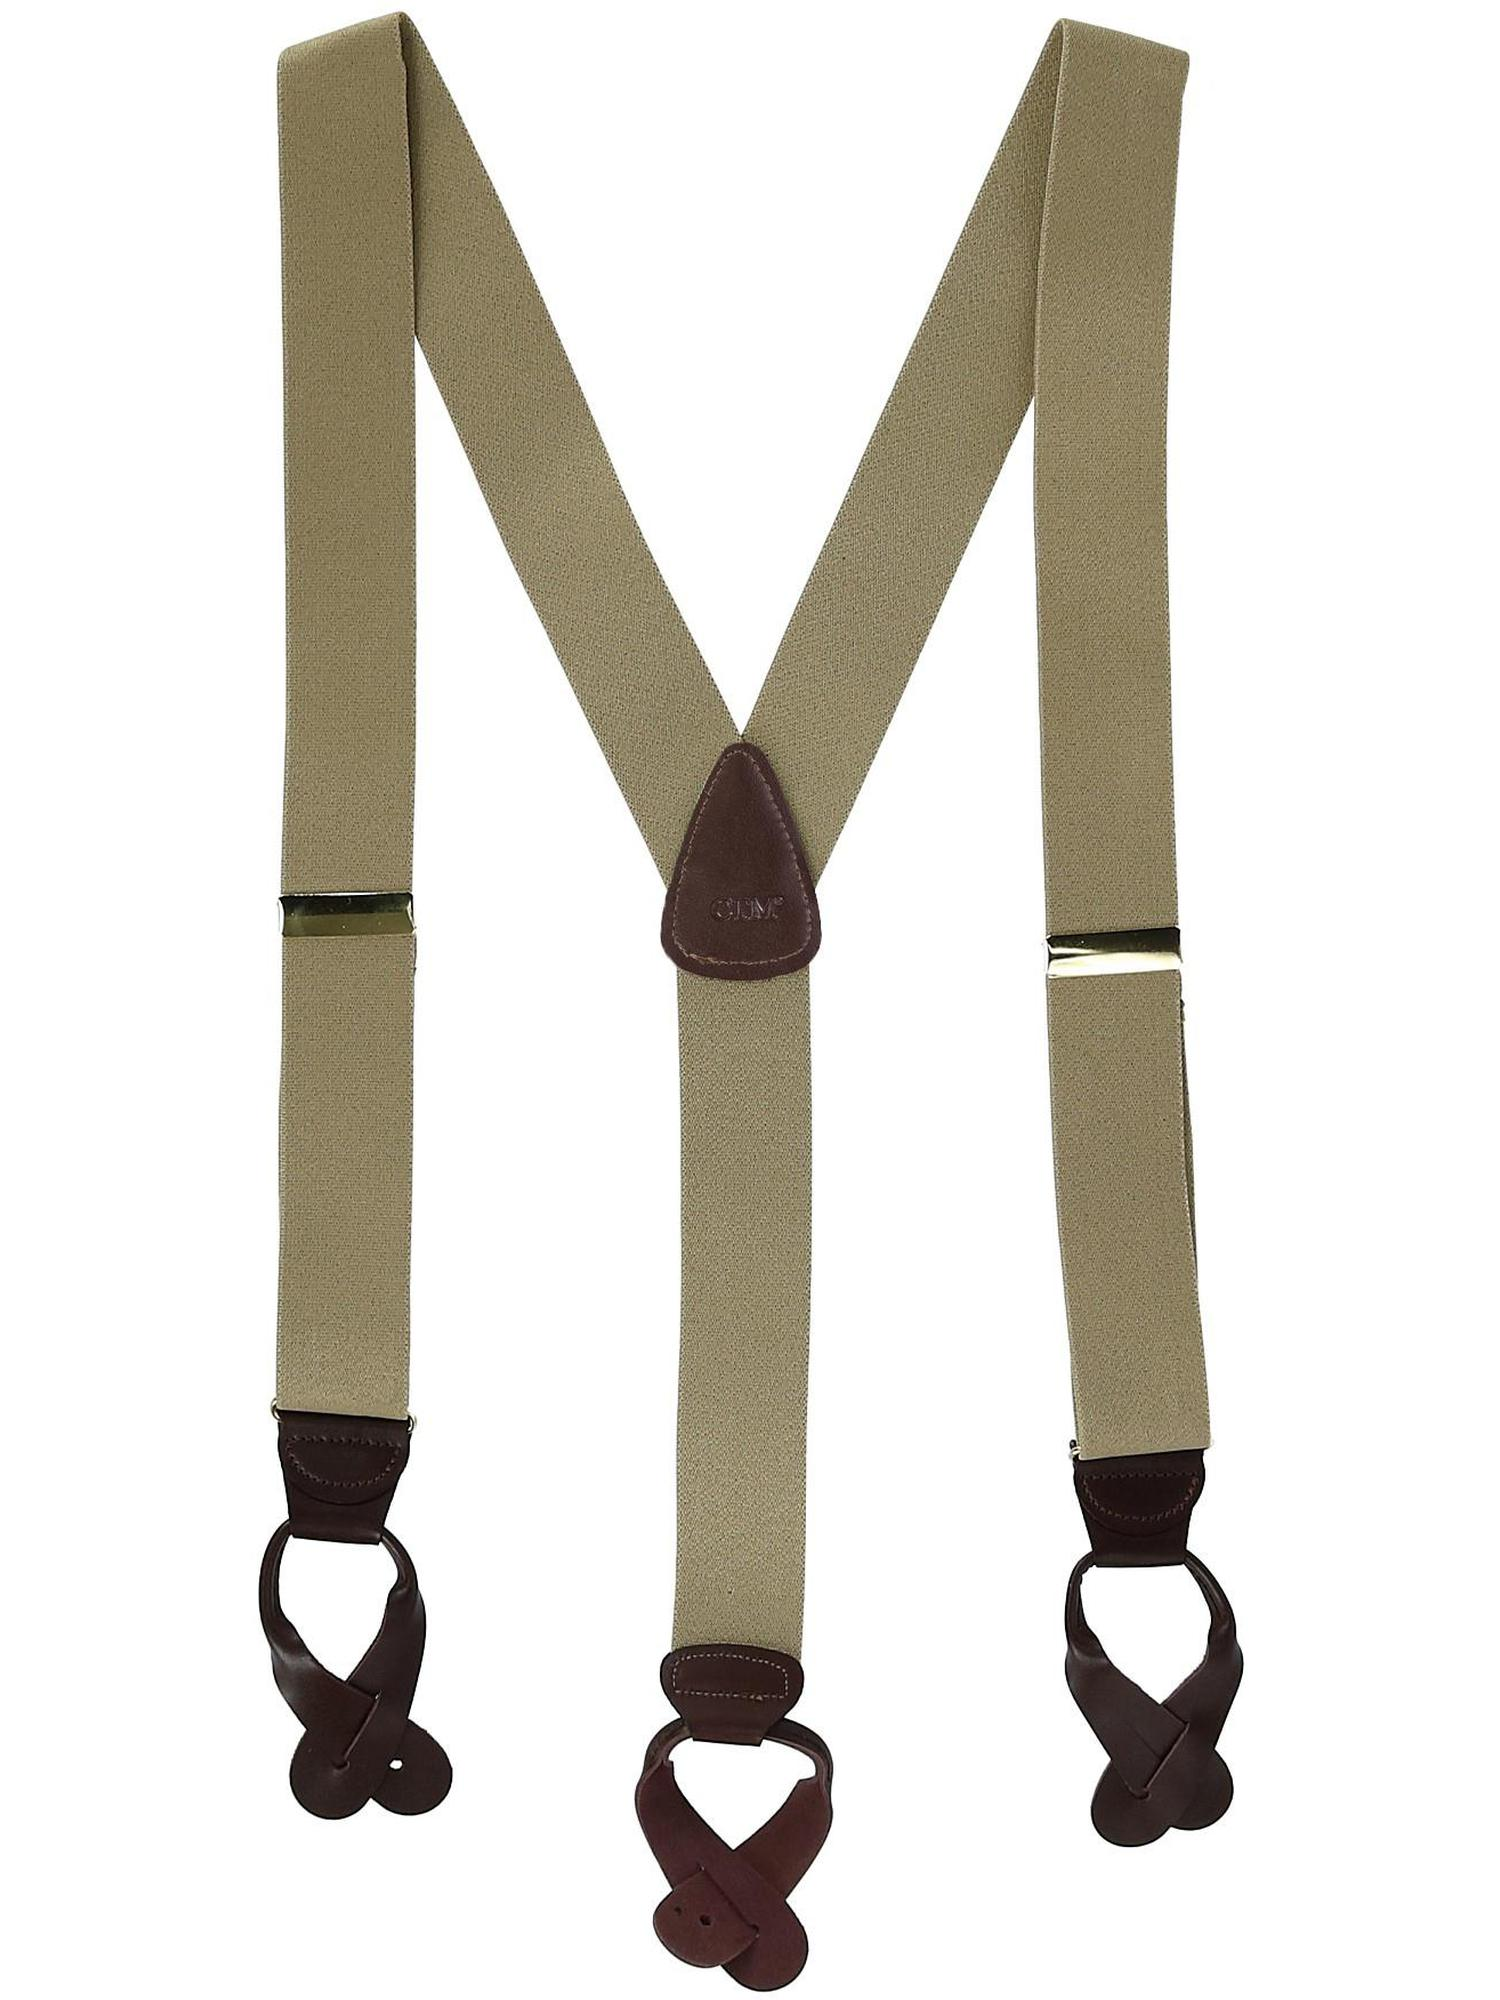 Red Suspender Station 2 Wide Mexican Flag Suspenders Green,White 48